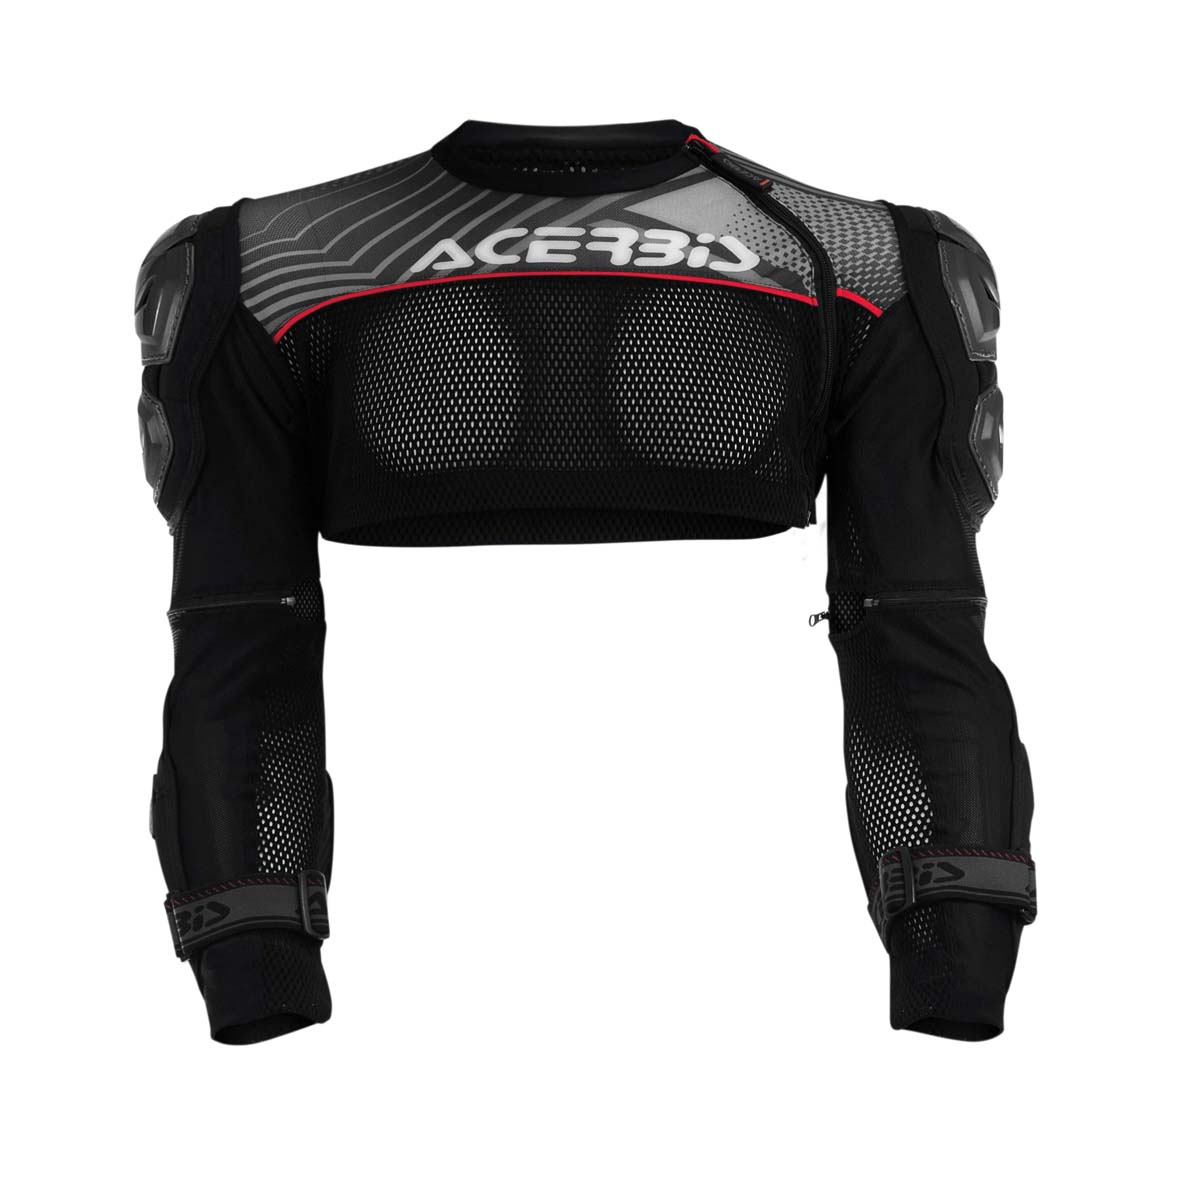 ACERBIS Cosmo Under-Jacket (Grey) SM-MD (5'5